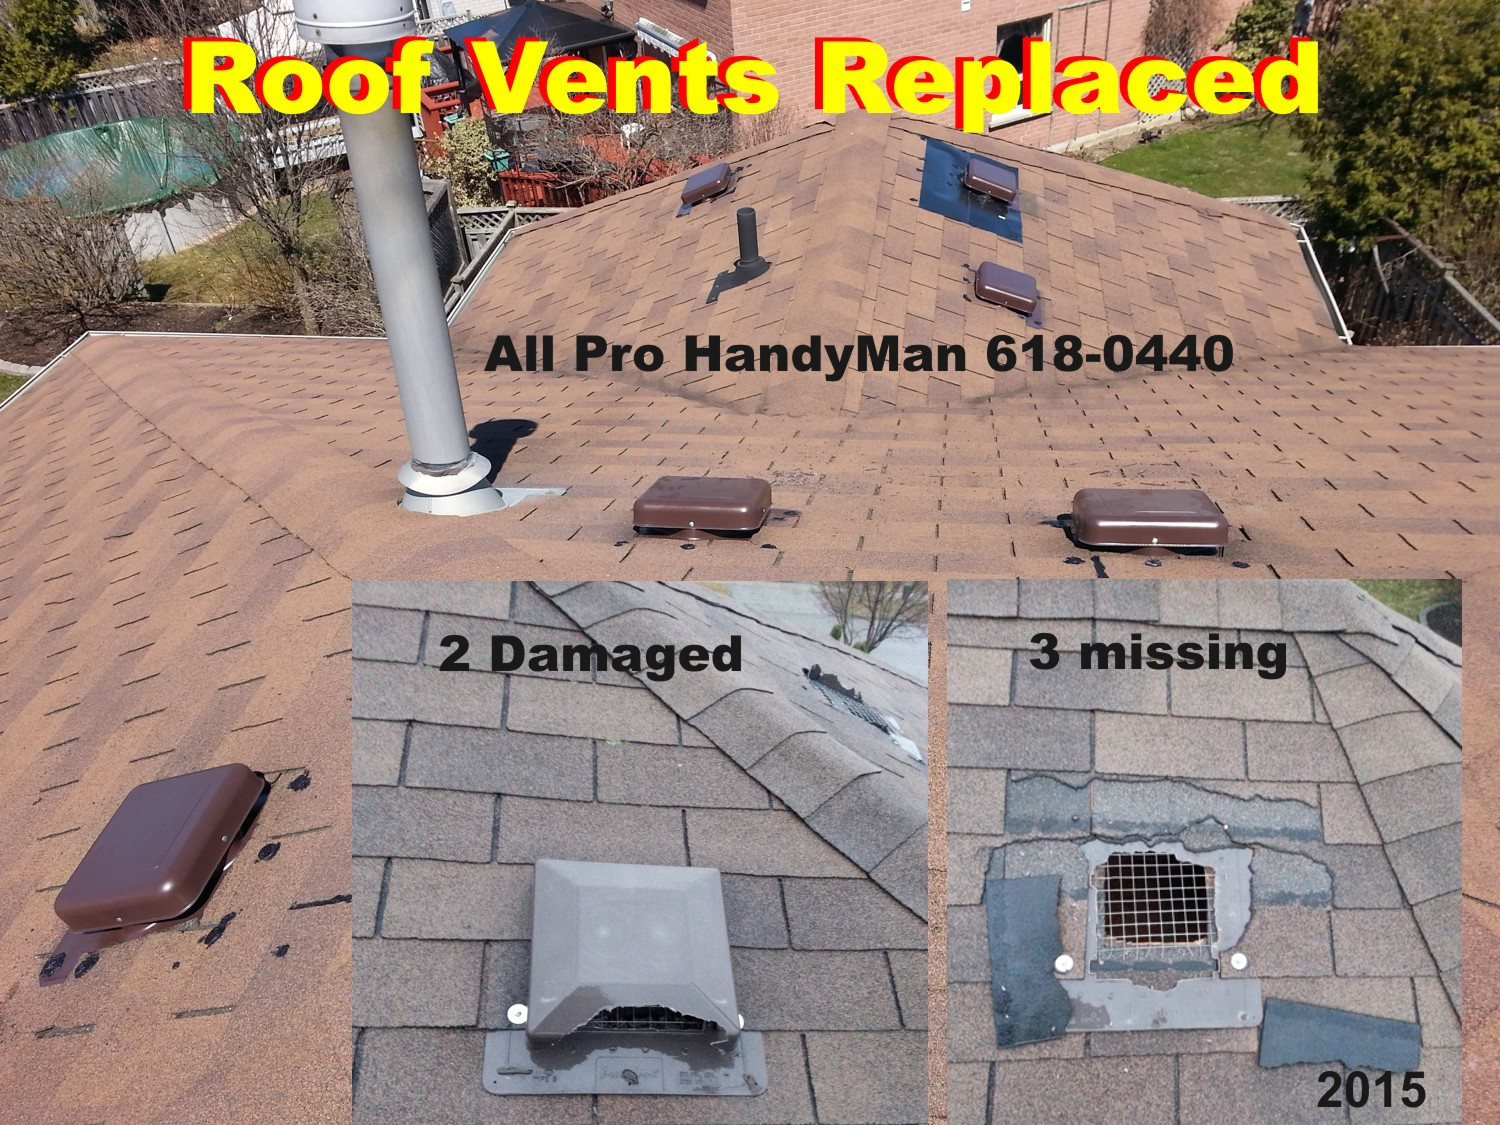 7 Roof Vents replaced